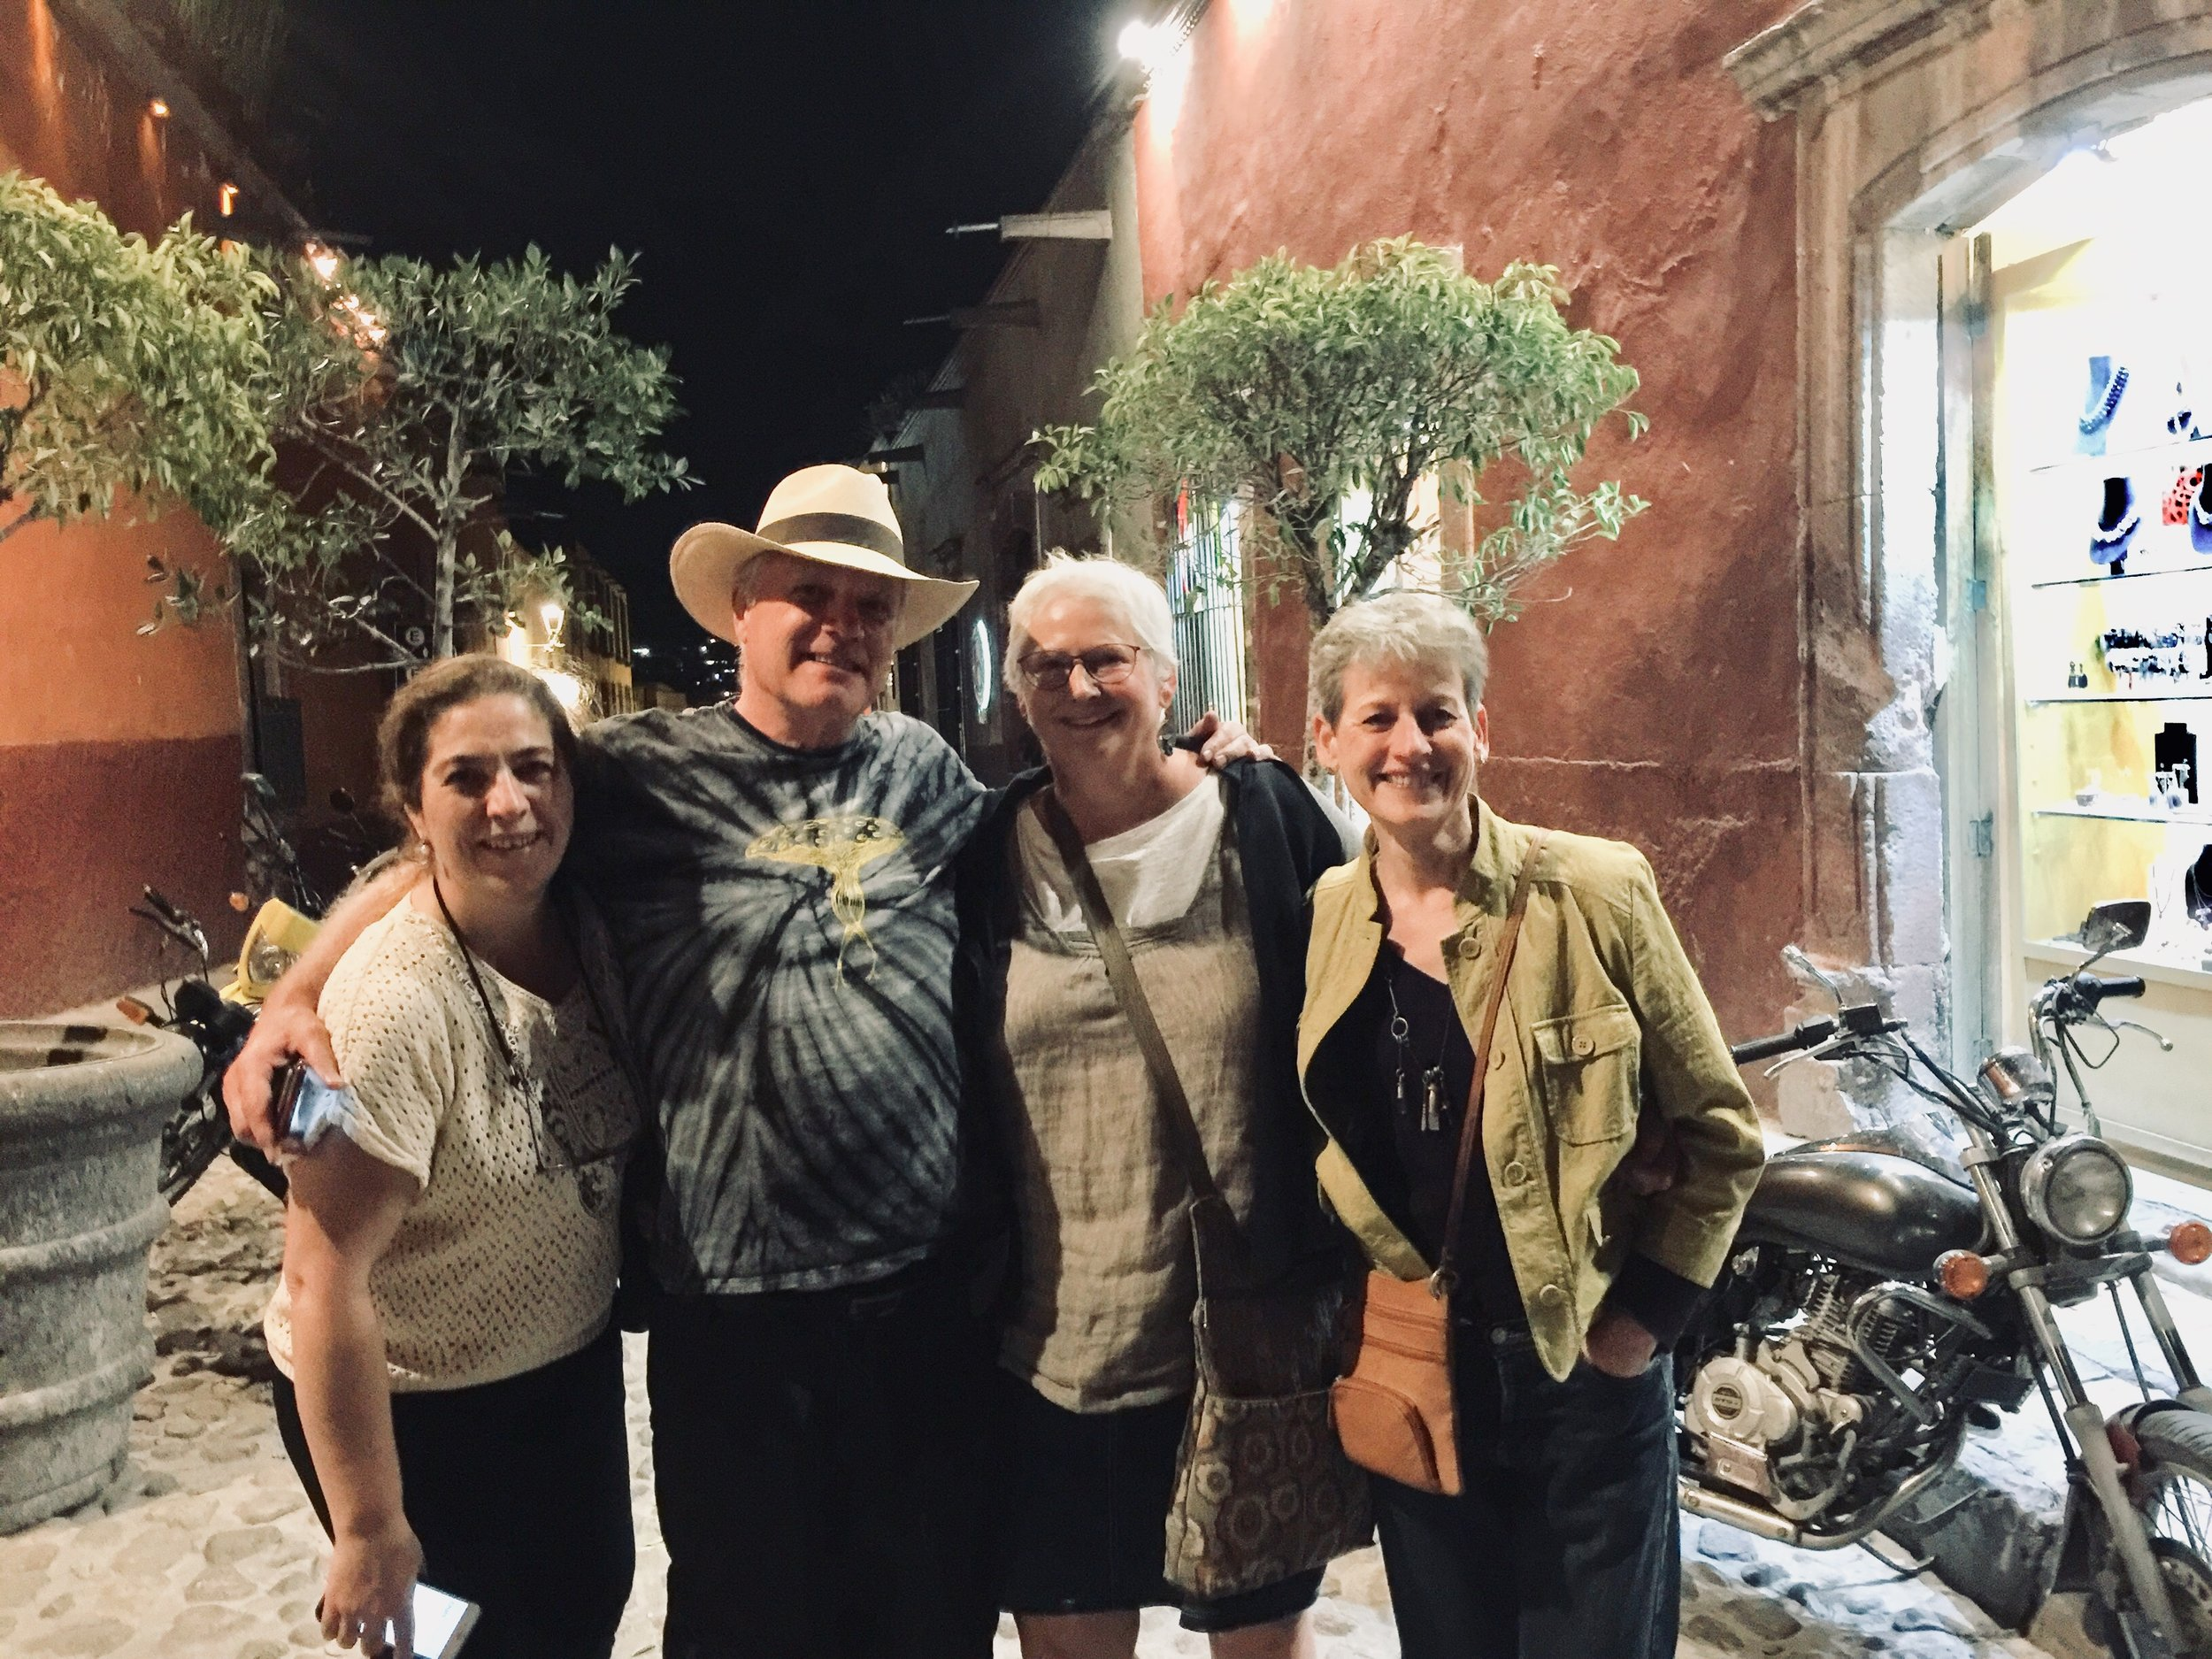 Ana Elena Martinez, Geoffrey Gorman, Kathie Vezzani and Morgan Brig in San Miguel